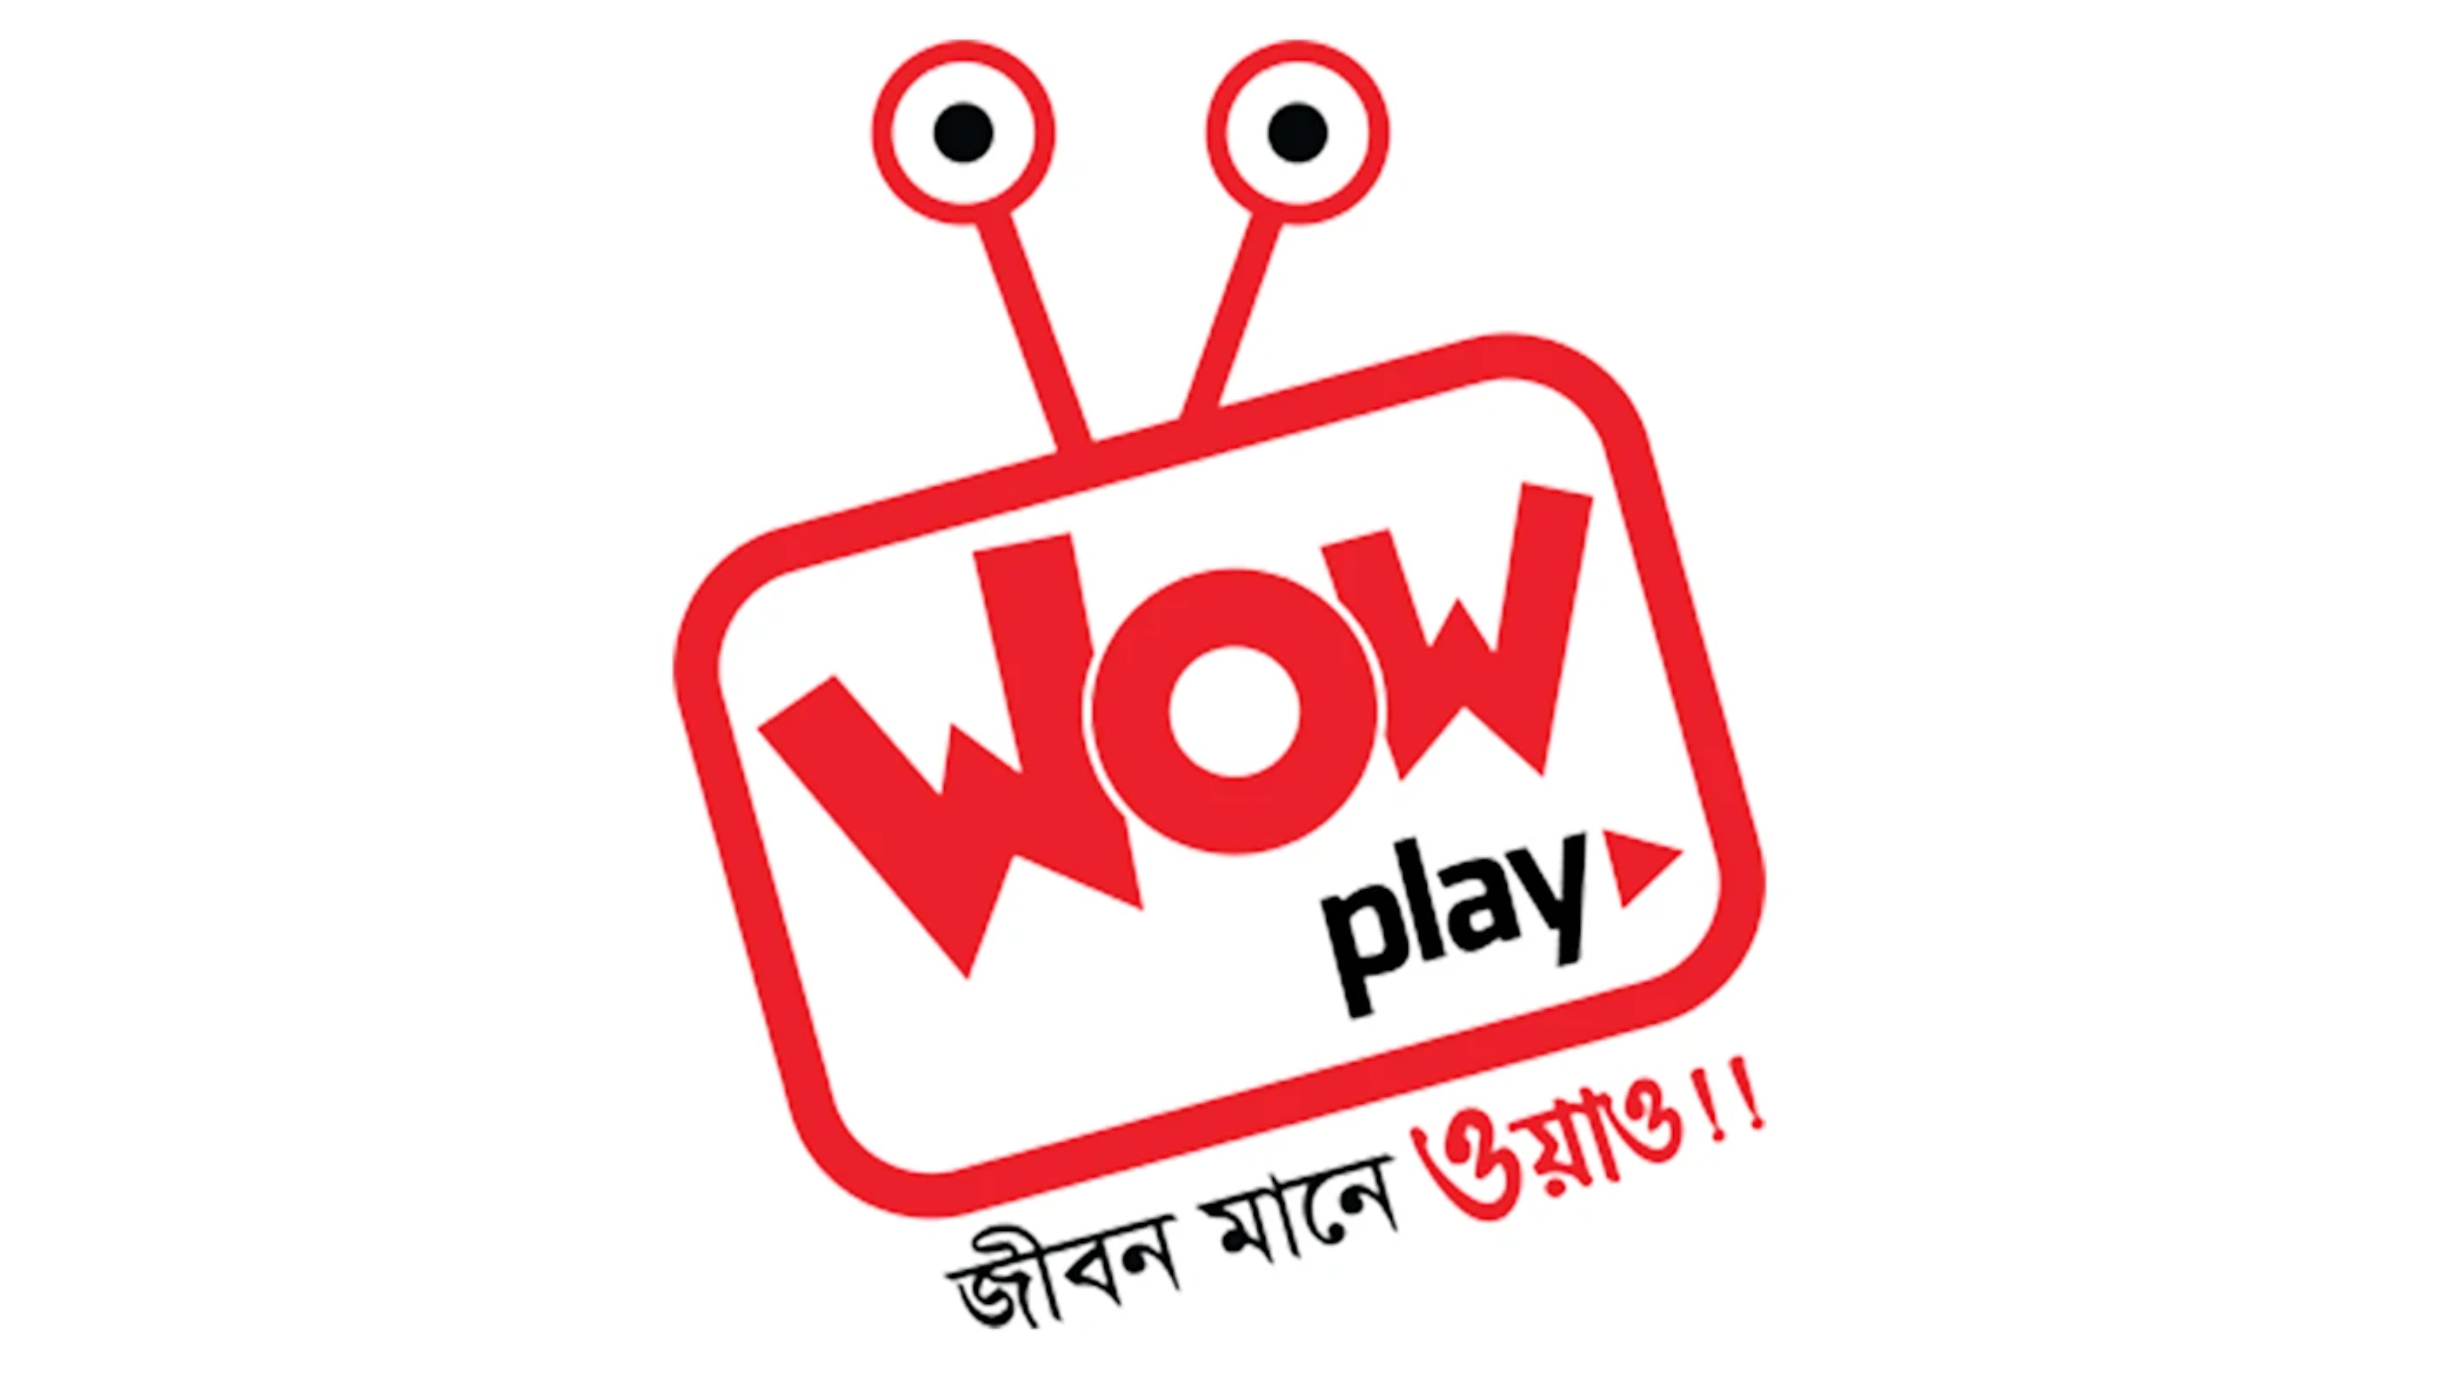 Film Production Company, Wow Play TV, continues to produce professional and quality media content